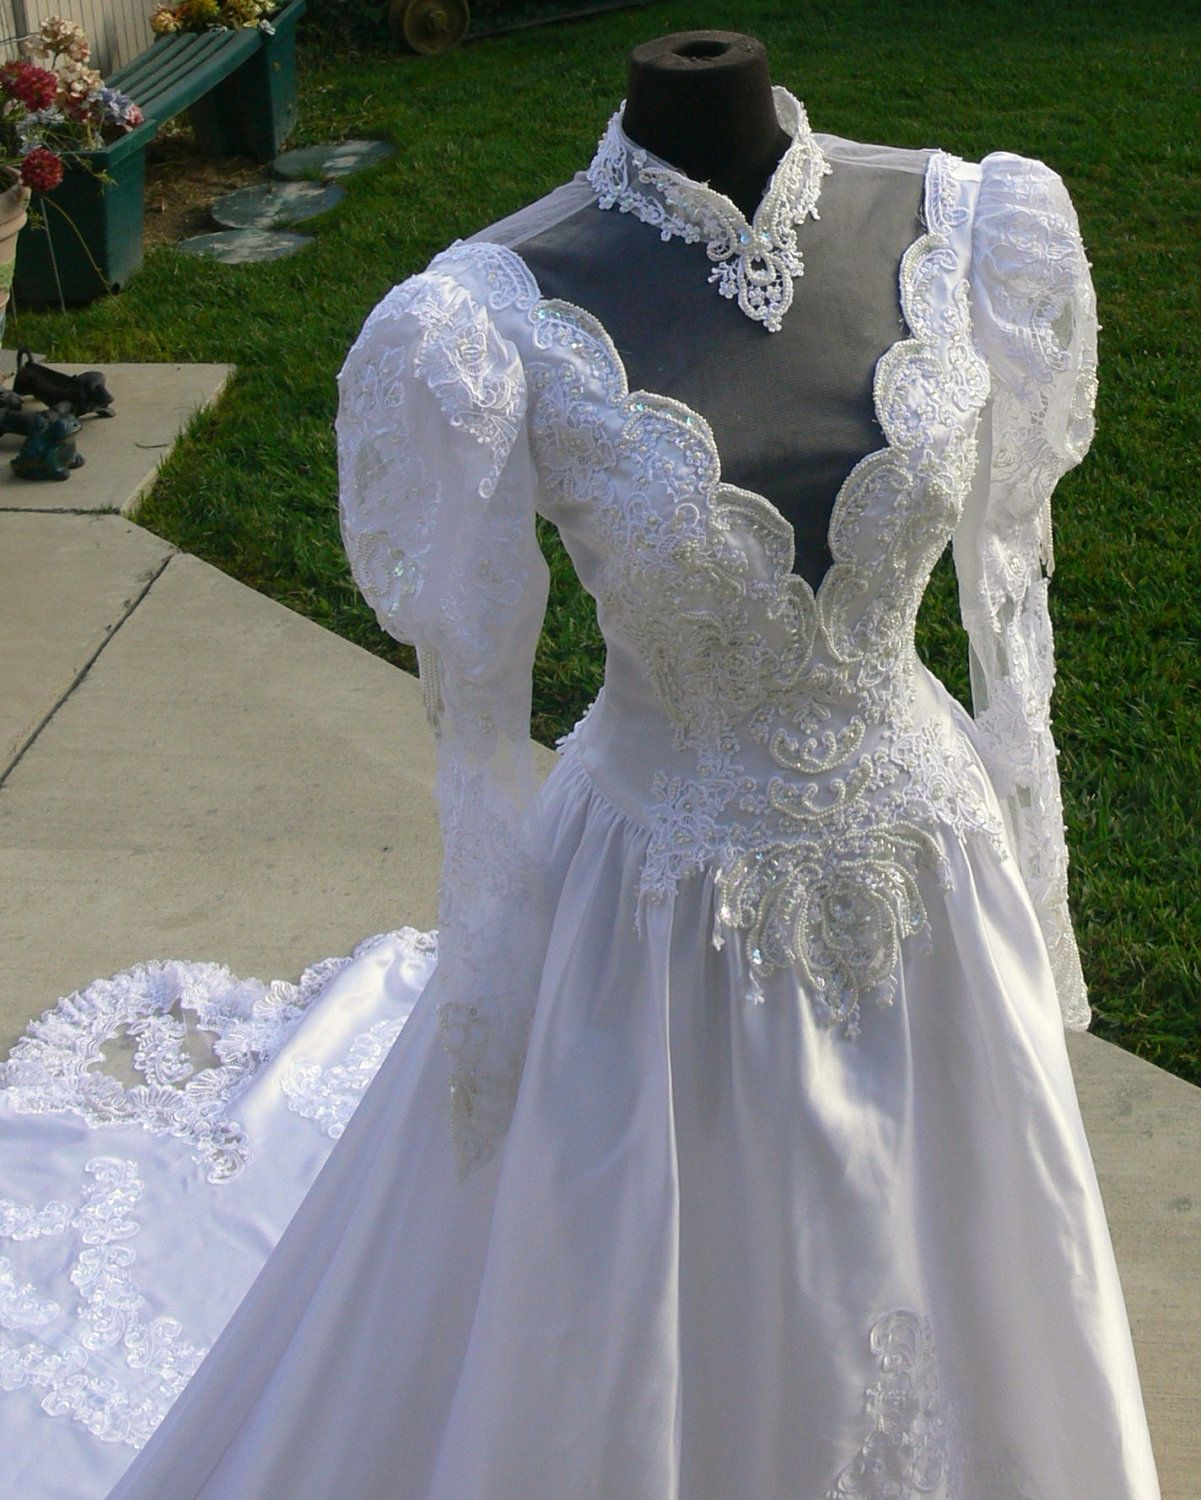 Princess di white bridal wedding dress with pearls and long train